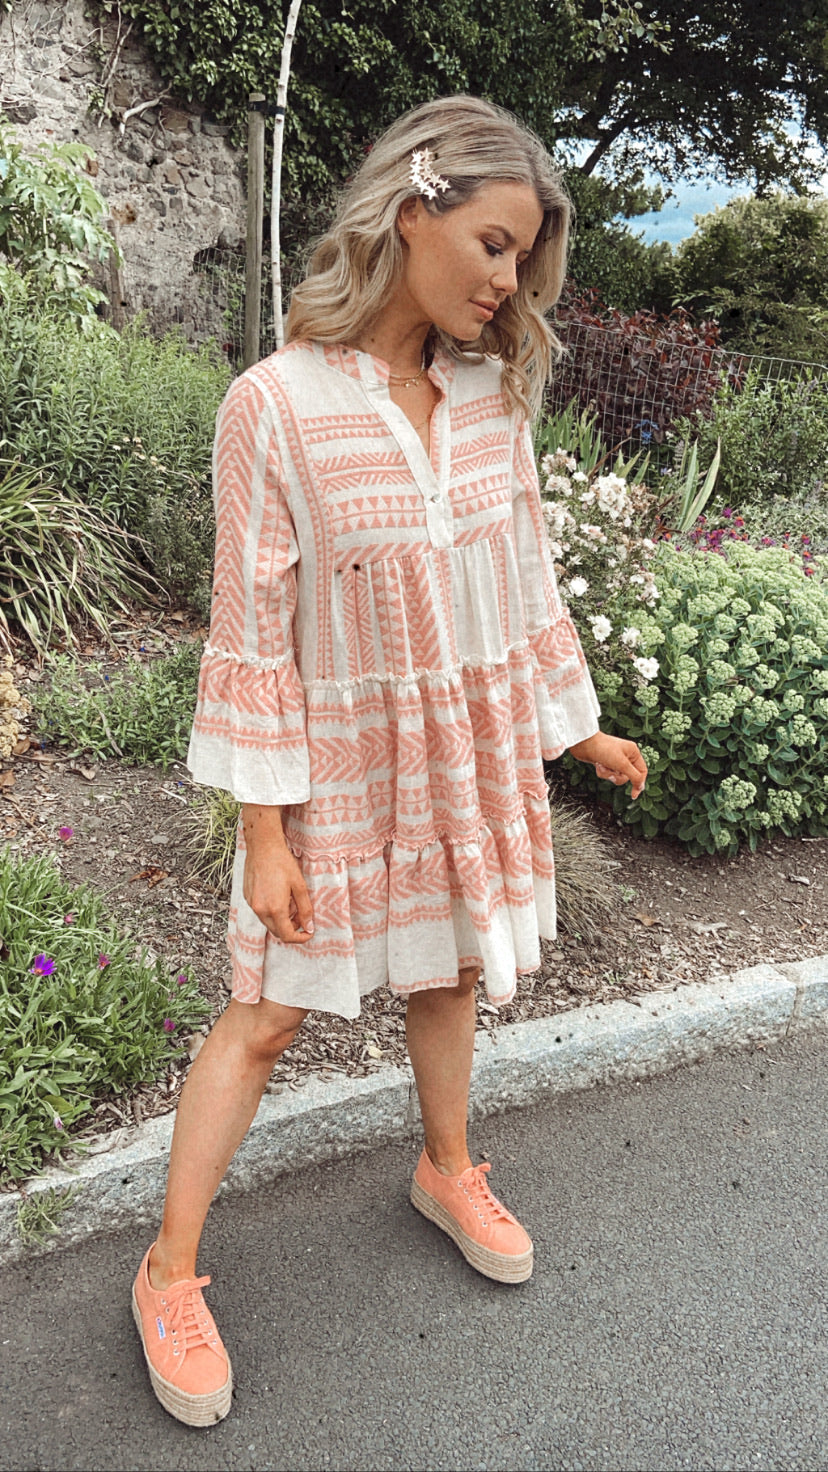 ICARIA ORGANIC COTTON EMBROIDERED DRESS - Blush